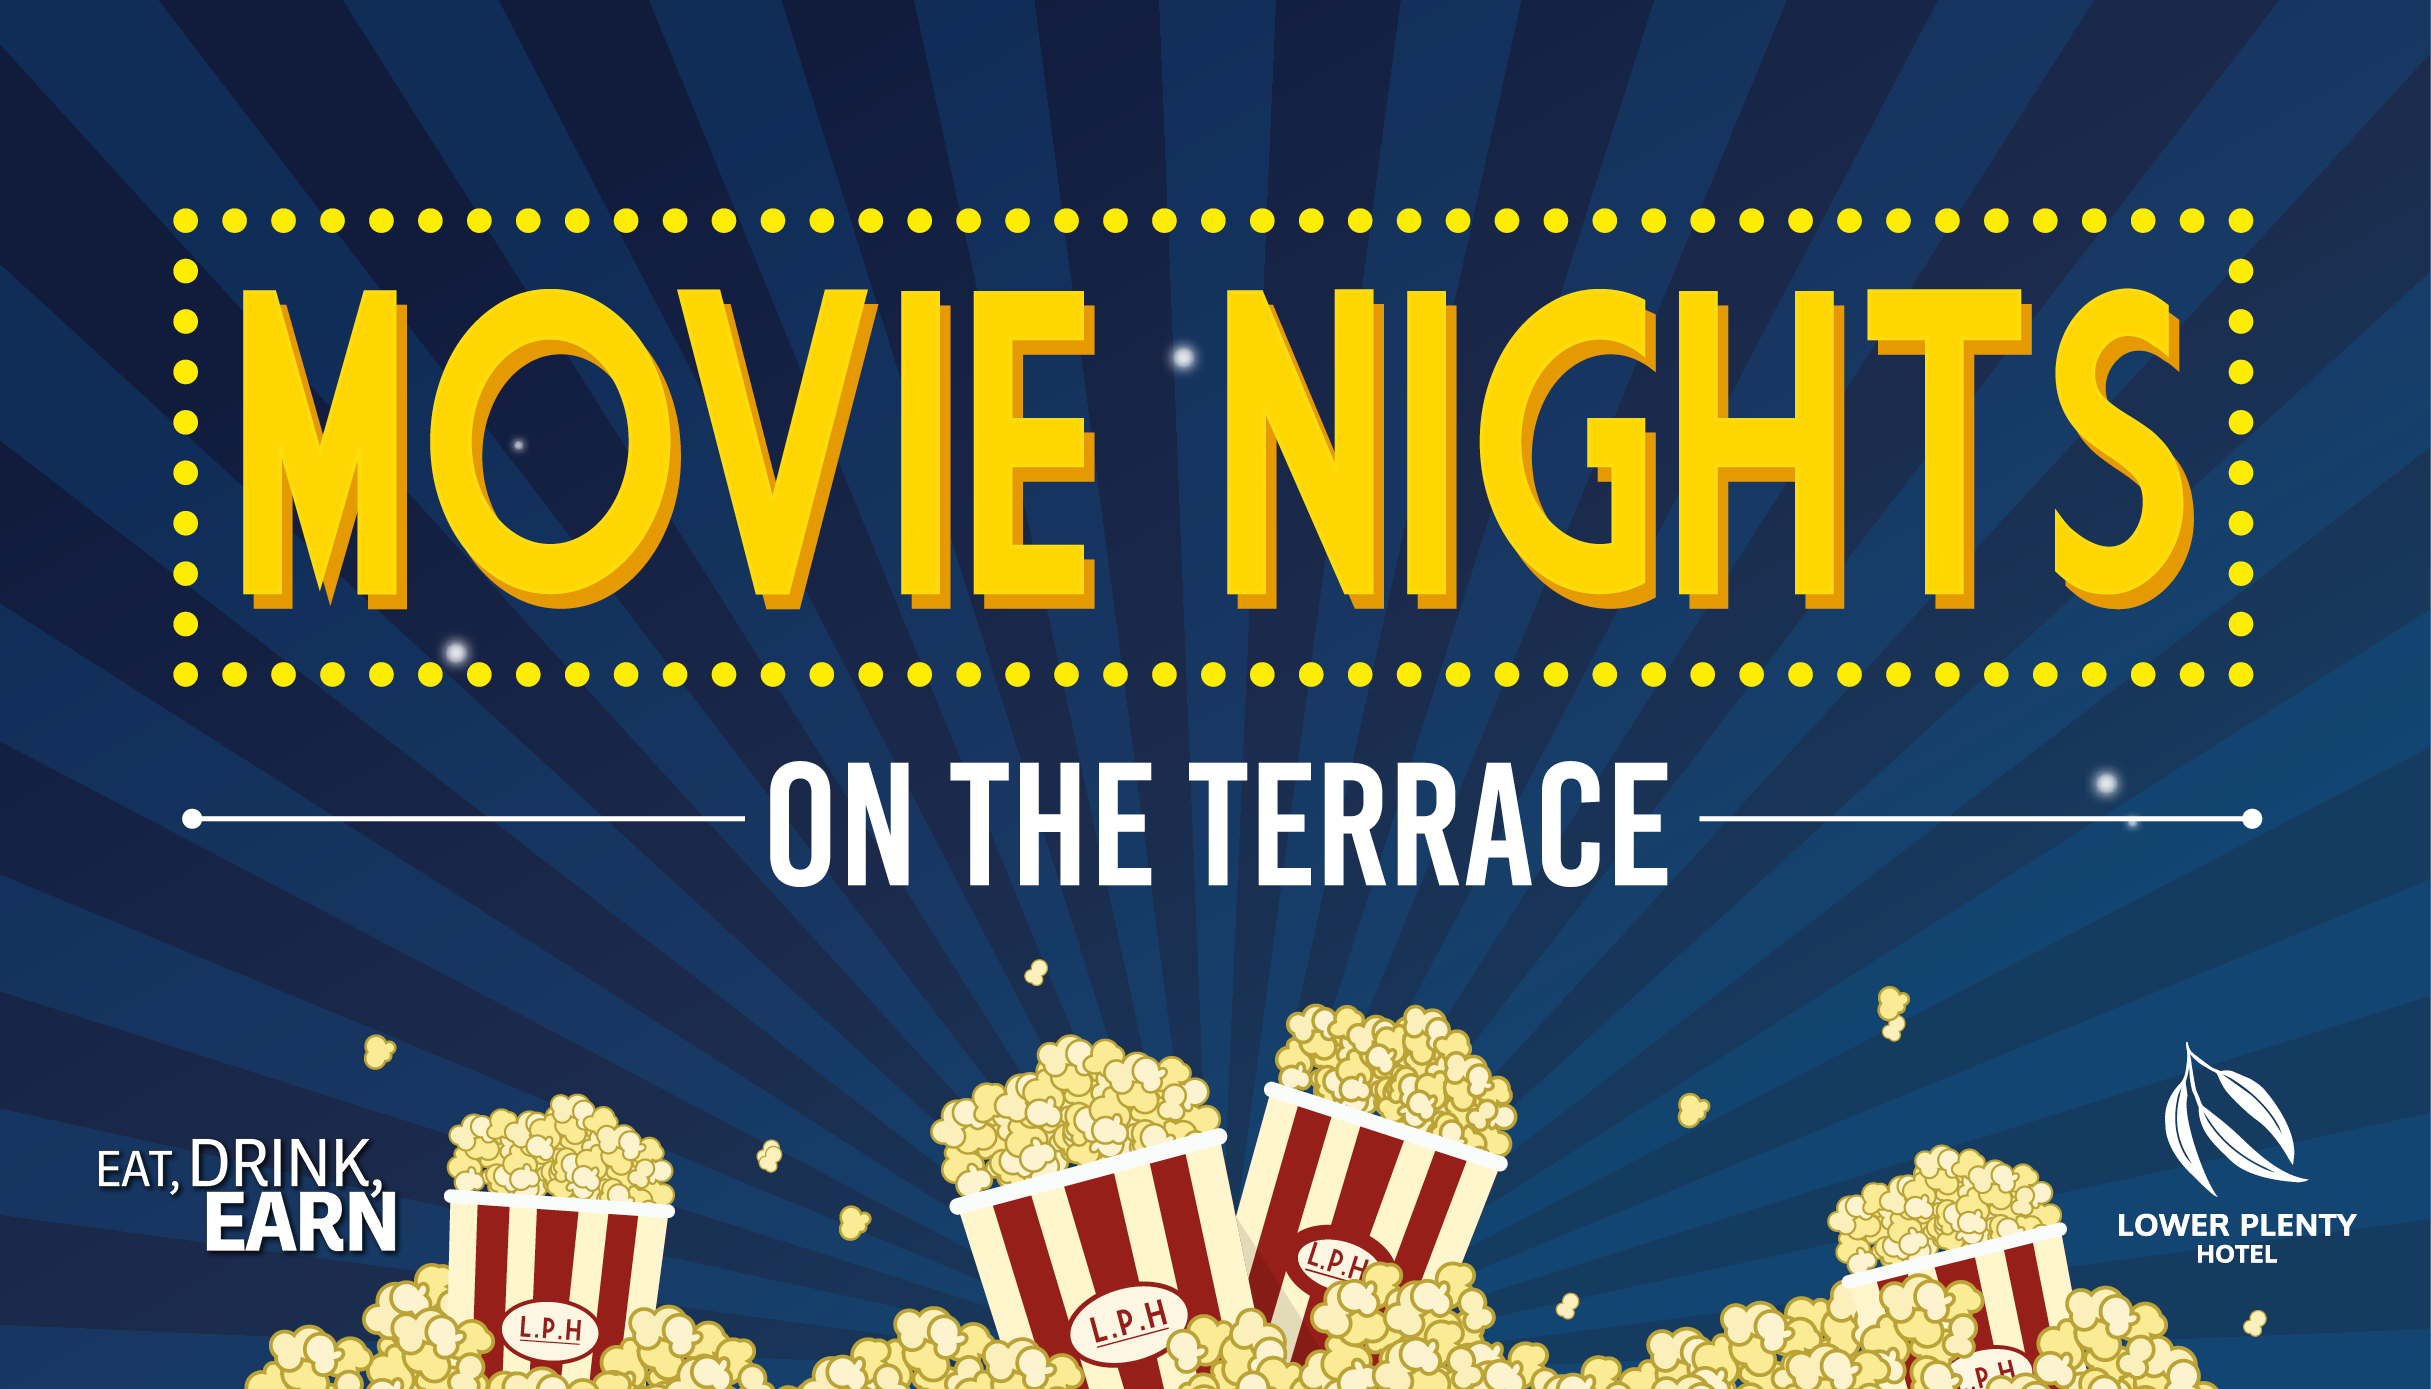 Movie nights on the terrace lower plenty hotel for Movies at the terrace